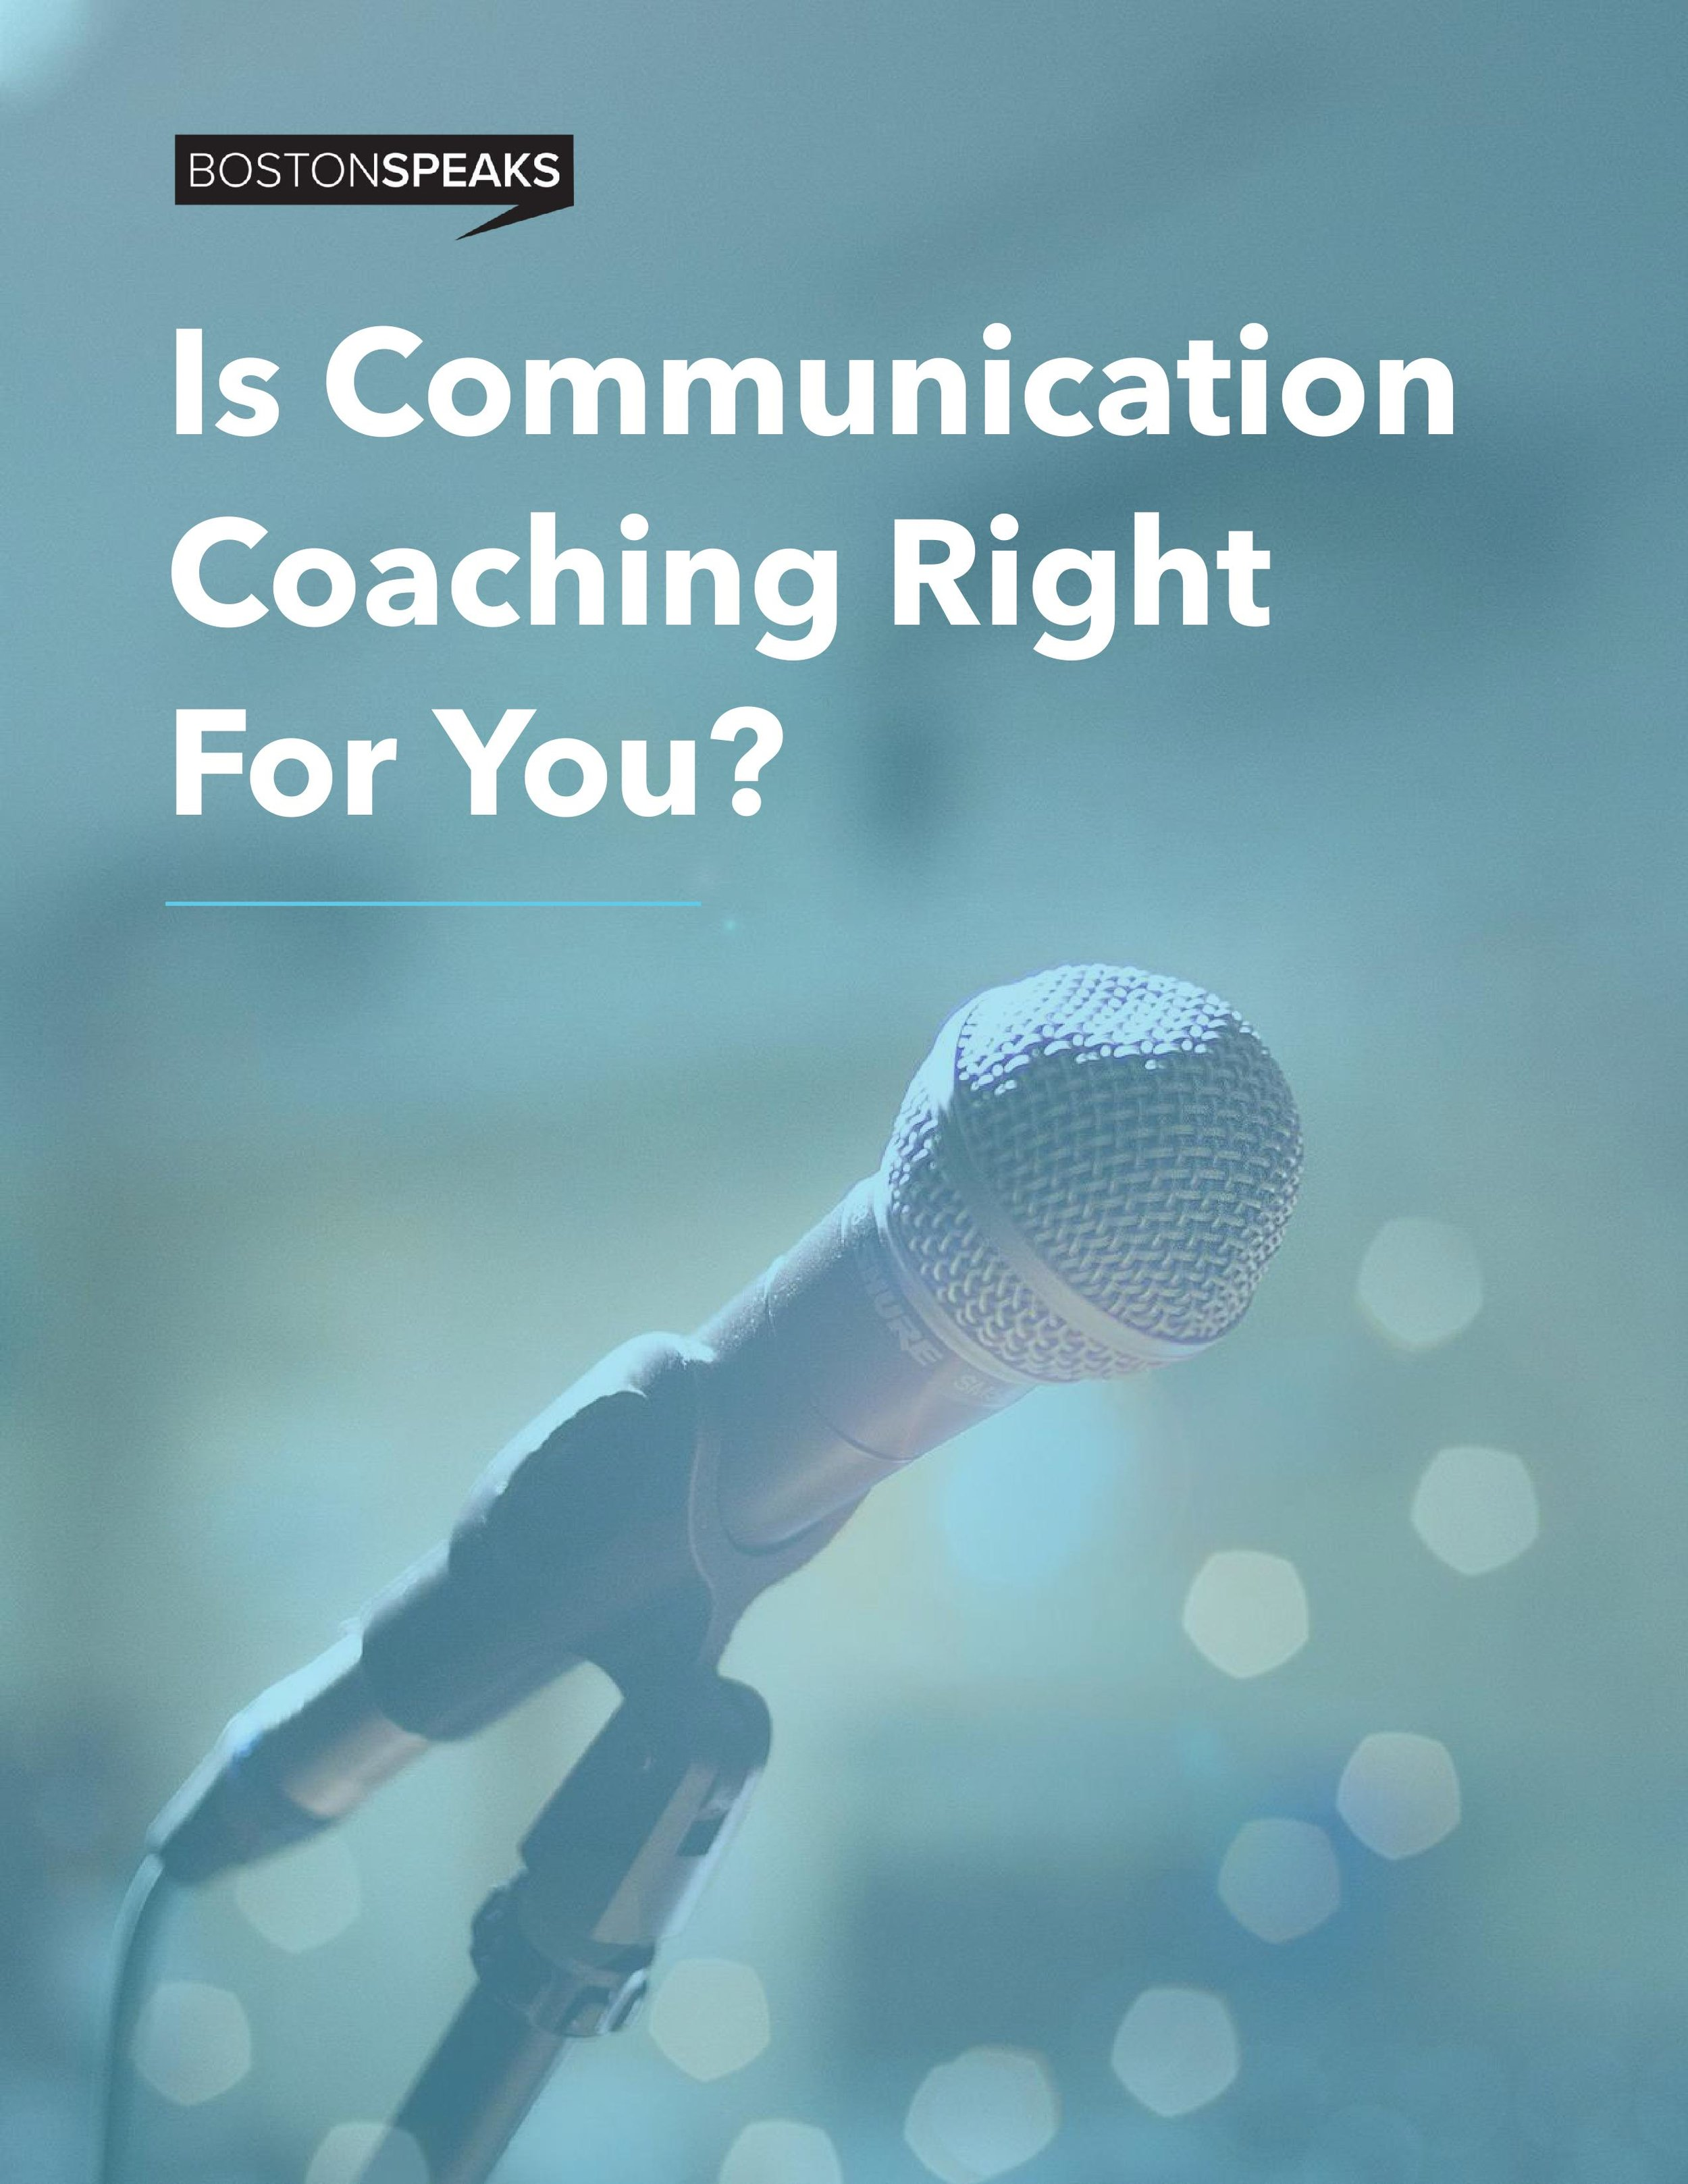 Is Communication Coaching Right For You?